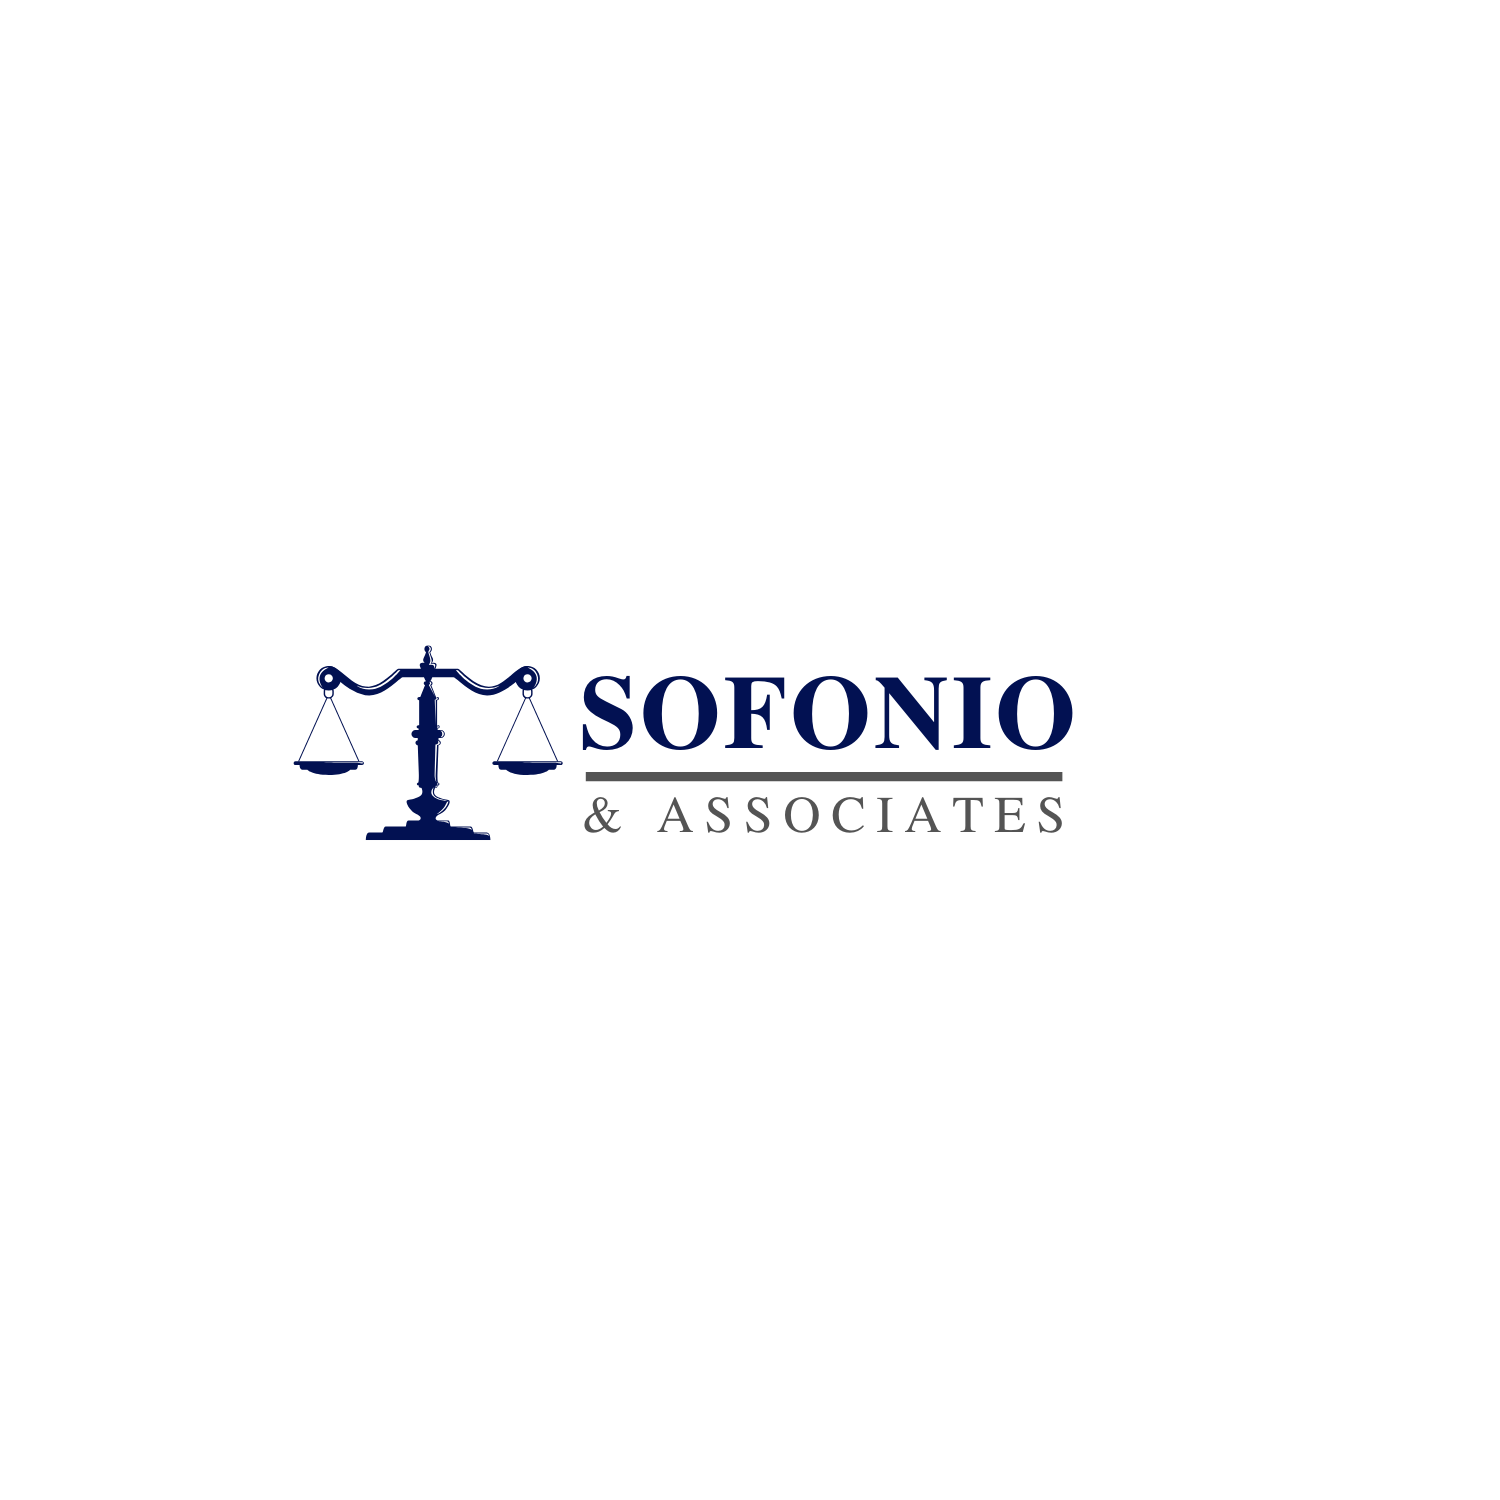 Sofonio and Associates - Personal Injury Attorney, Criminal Law, Employment Law